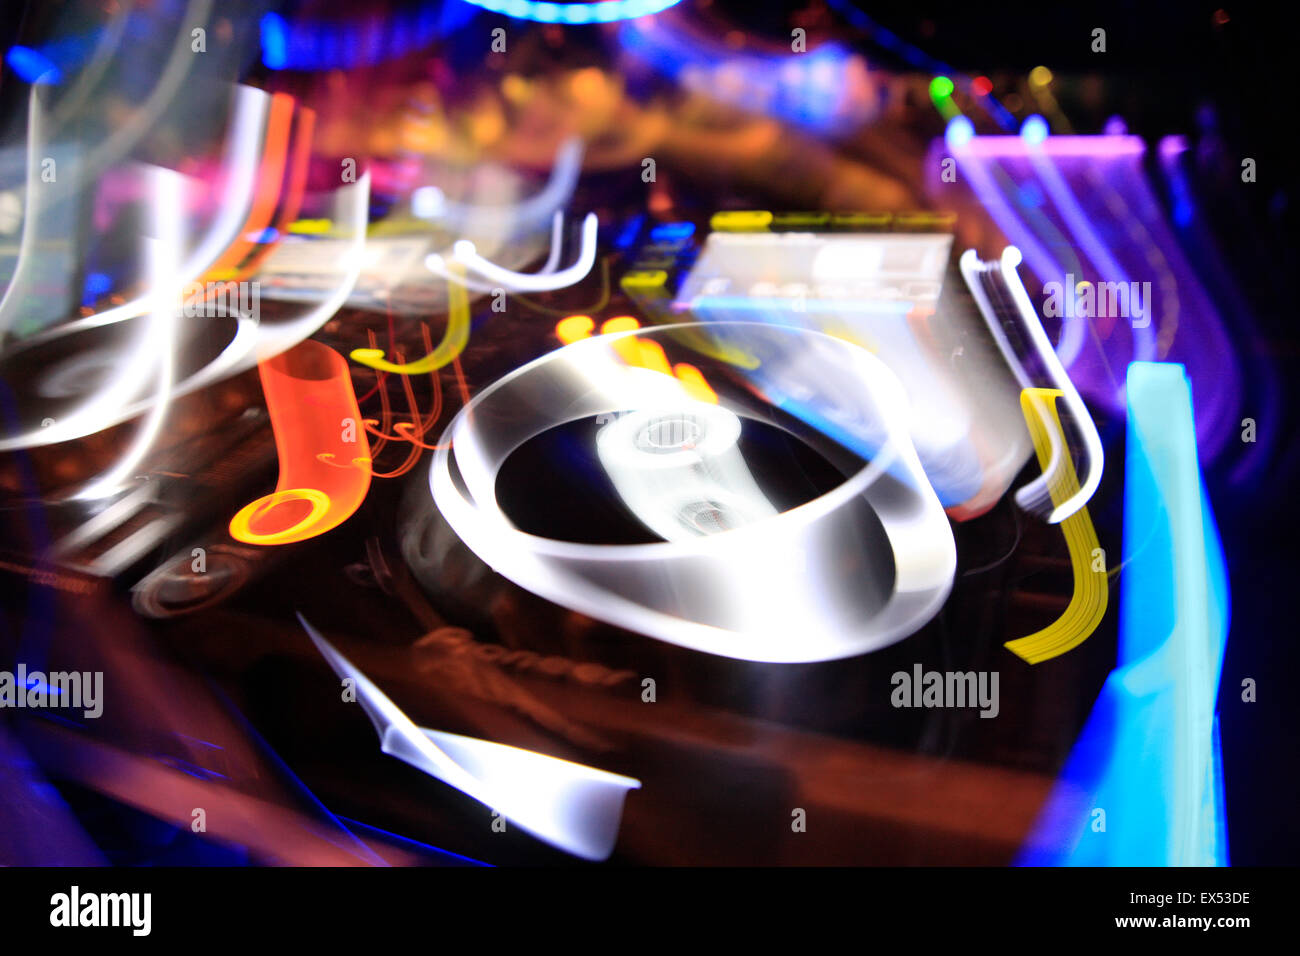 Atmospheric motion image of a deck equipment / sound mixing devices. Athens nightclub, Greece. - Stock Image